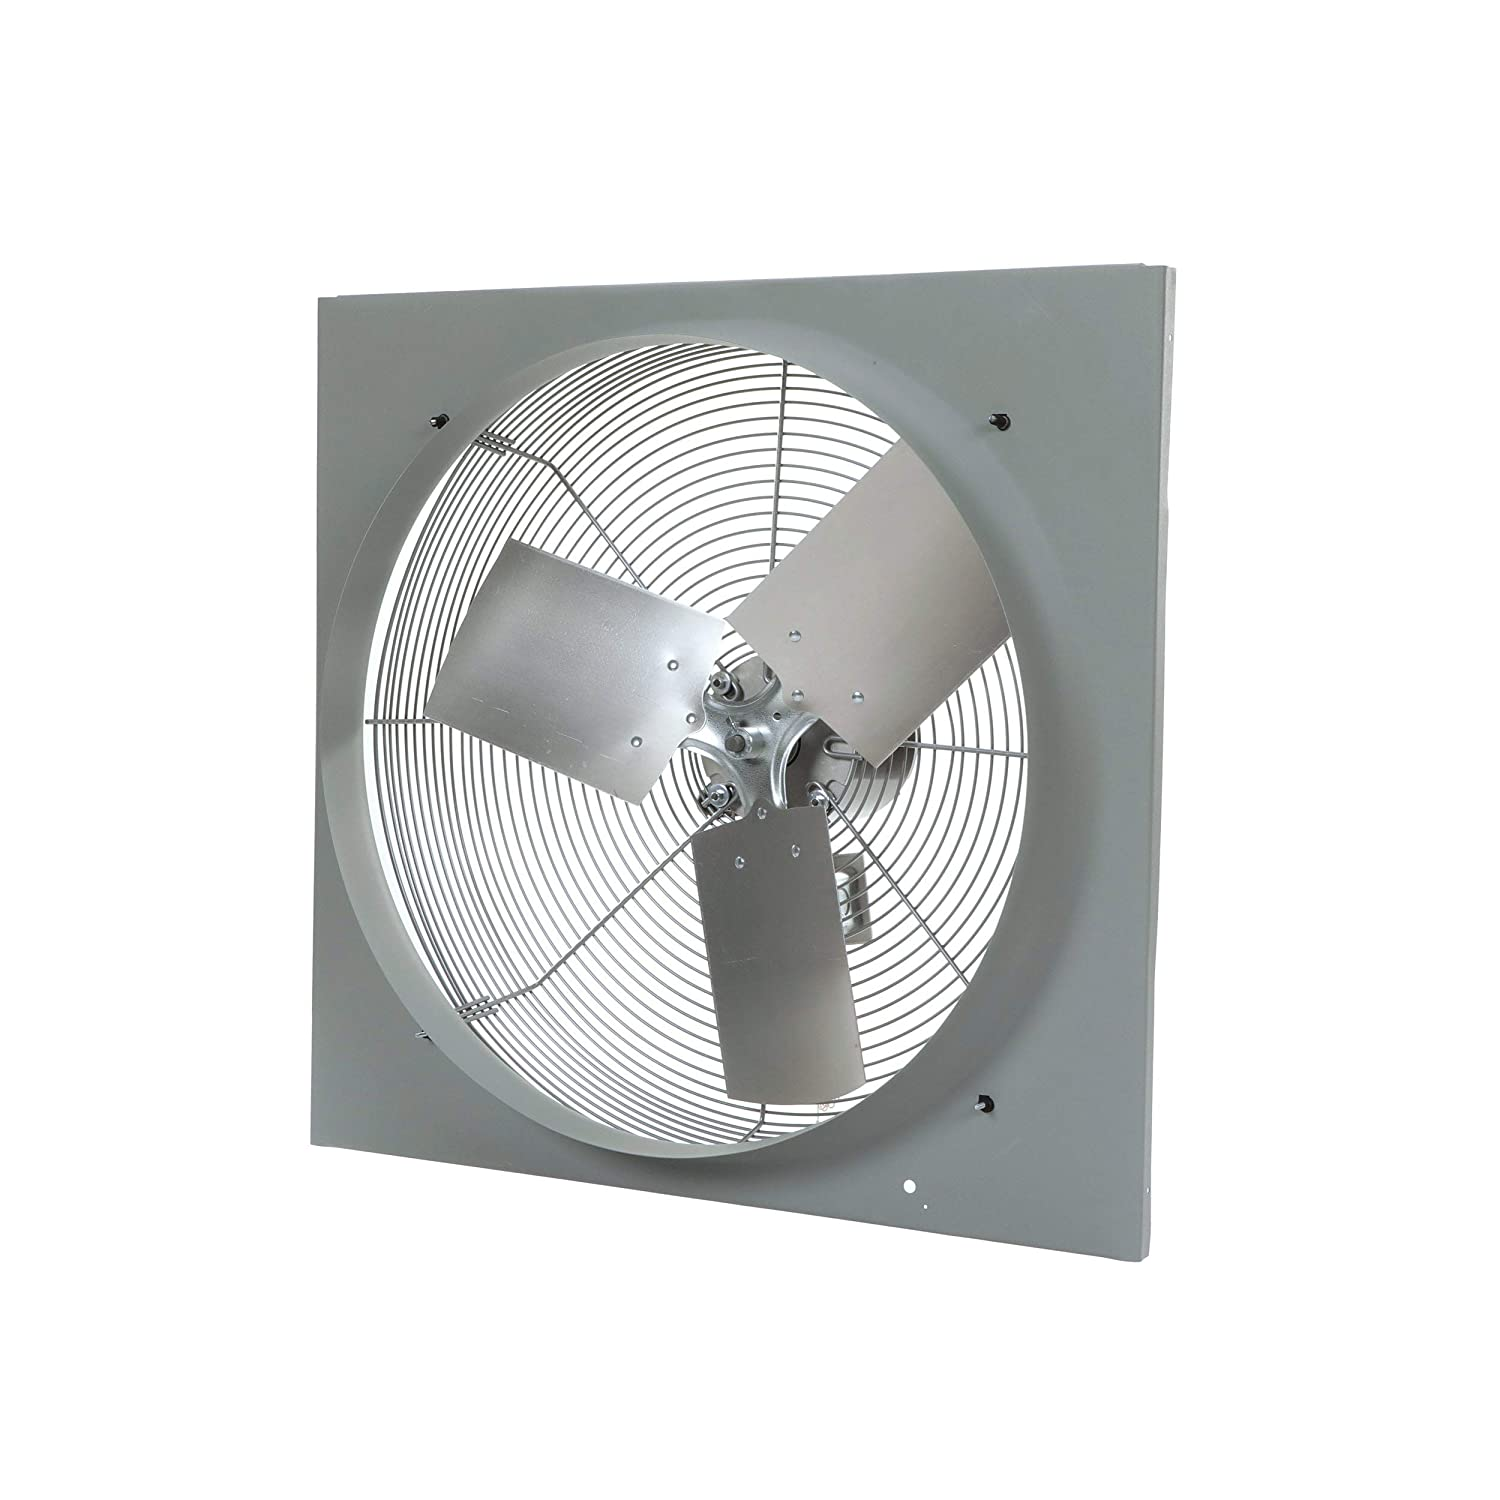 """TPI Corporation CE24-DV Venturi Mounted Direct Drive Wall Exhaust Fan, 24"""" Blade Diameter, 120 Volt, 1/4 HP 2 Speed Motor, Pull Chain Switch, May be Used w/Ext. Shutter"""